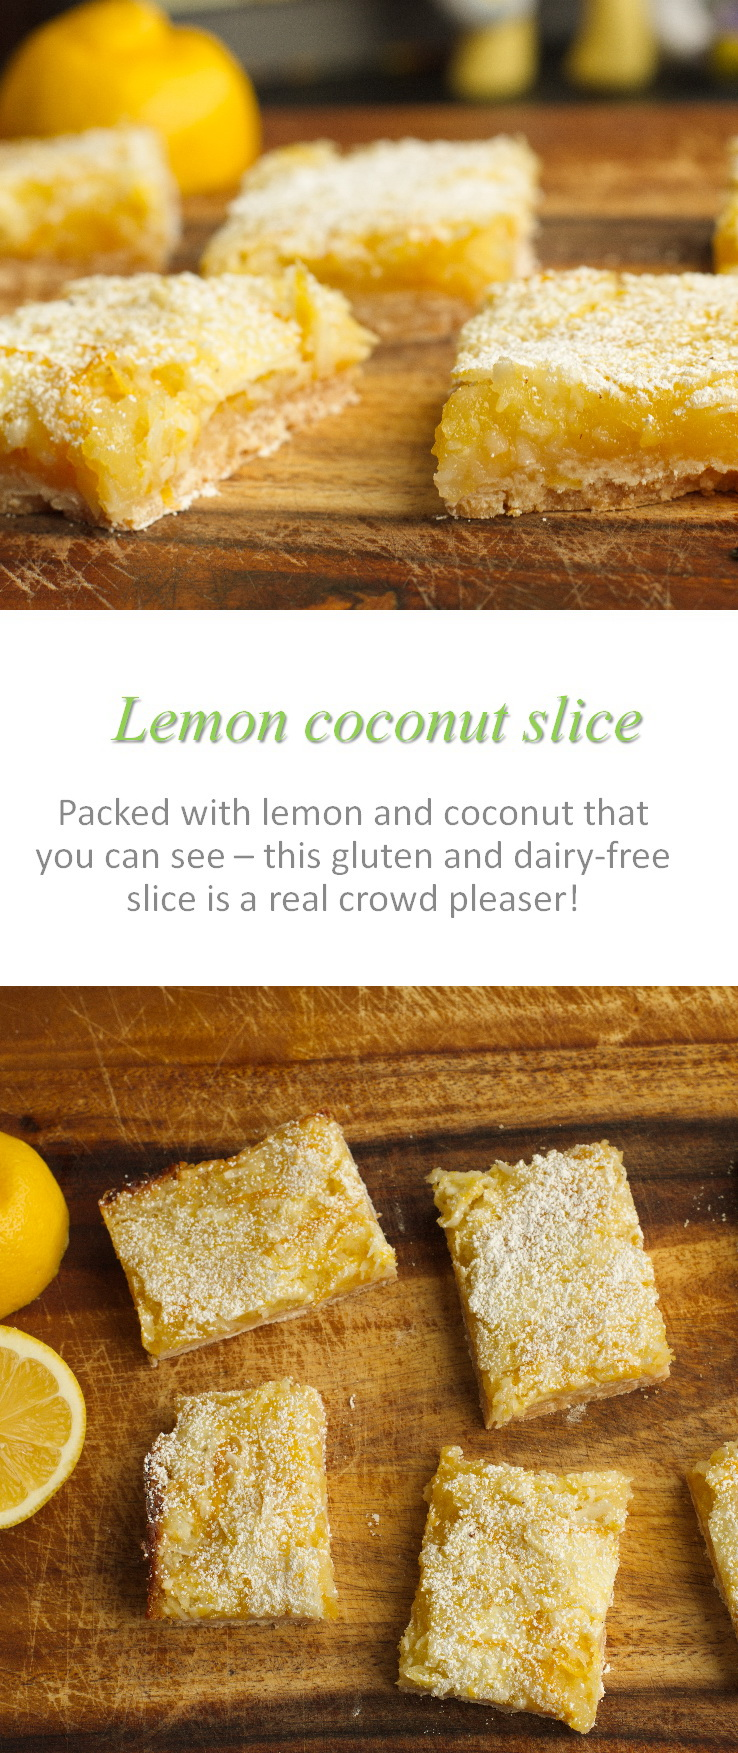 A sweet but tangy gluten and dairy-free lemon coconut slice with flavor that you can see #lemon